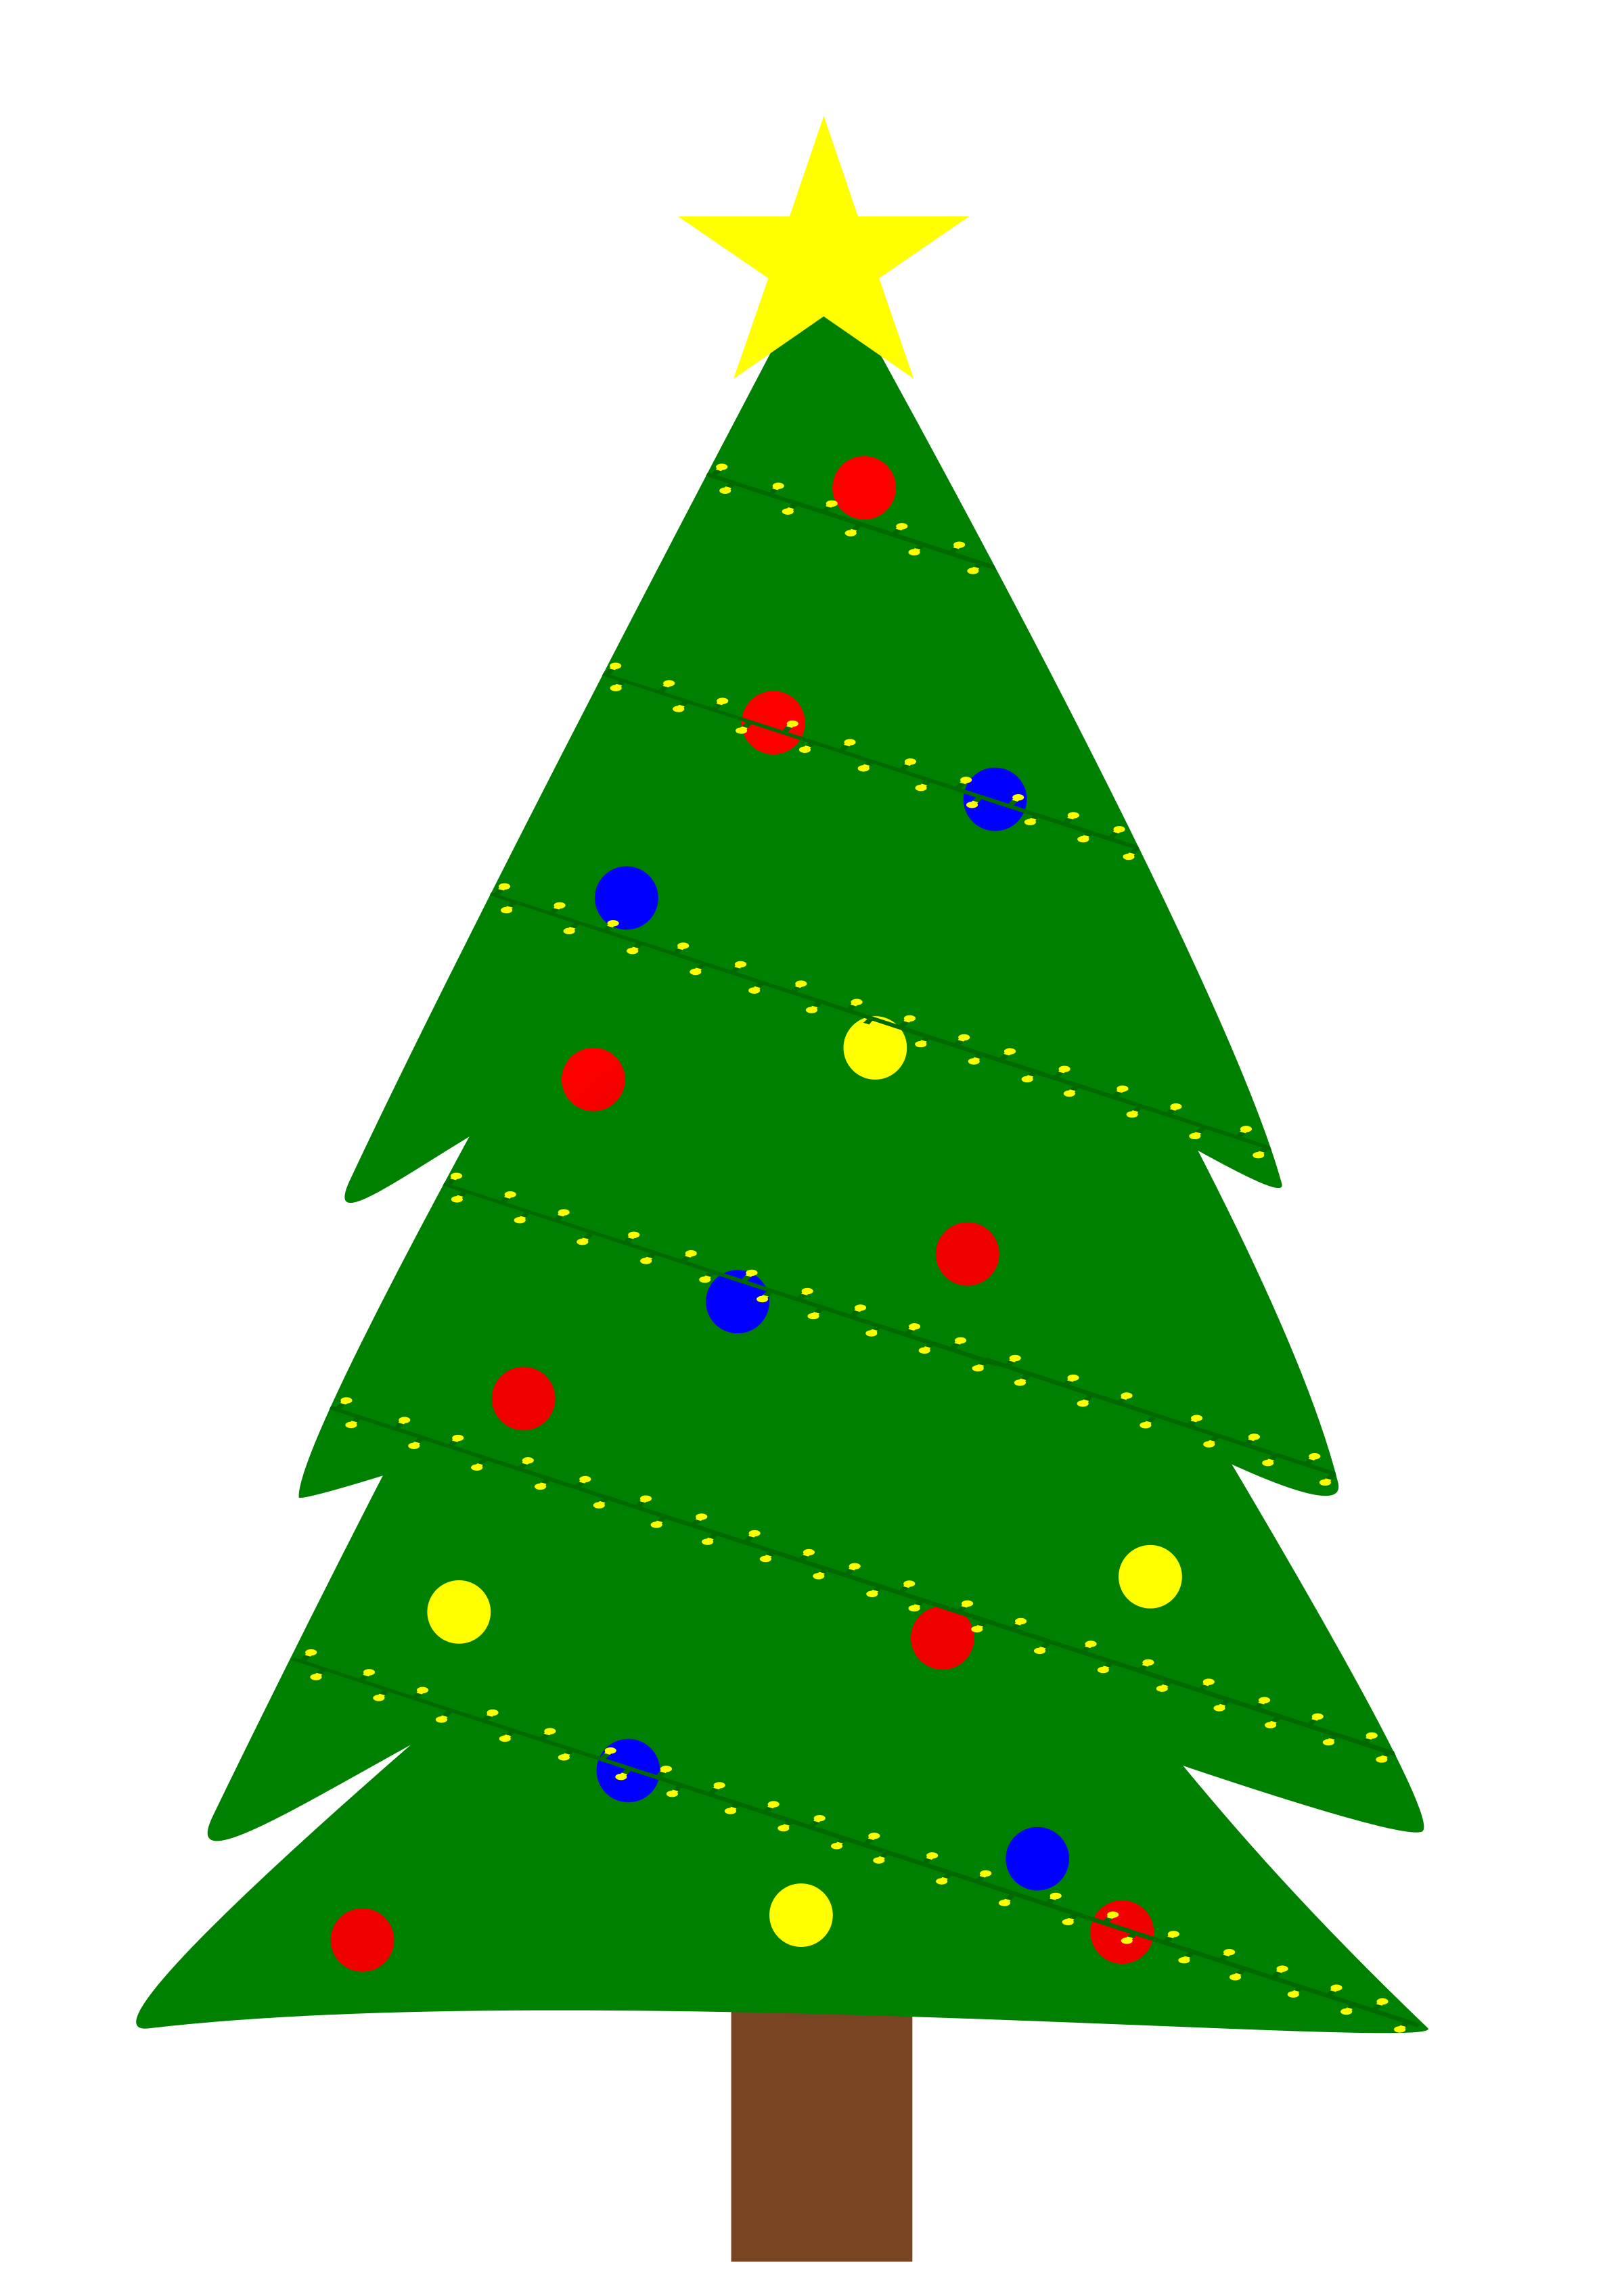 Christmas tree image clipart vector transparent stock Clipart - Christmas tree with lights vector transparent stock